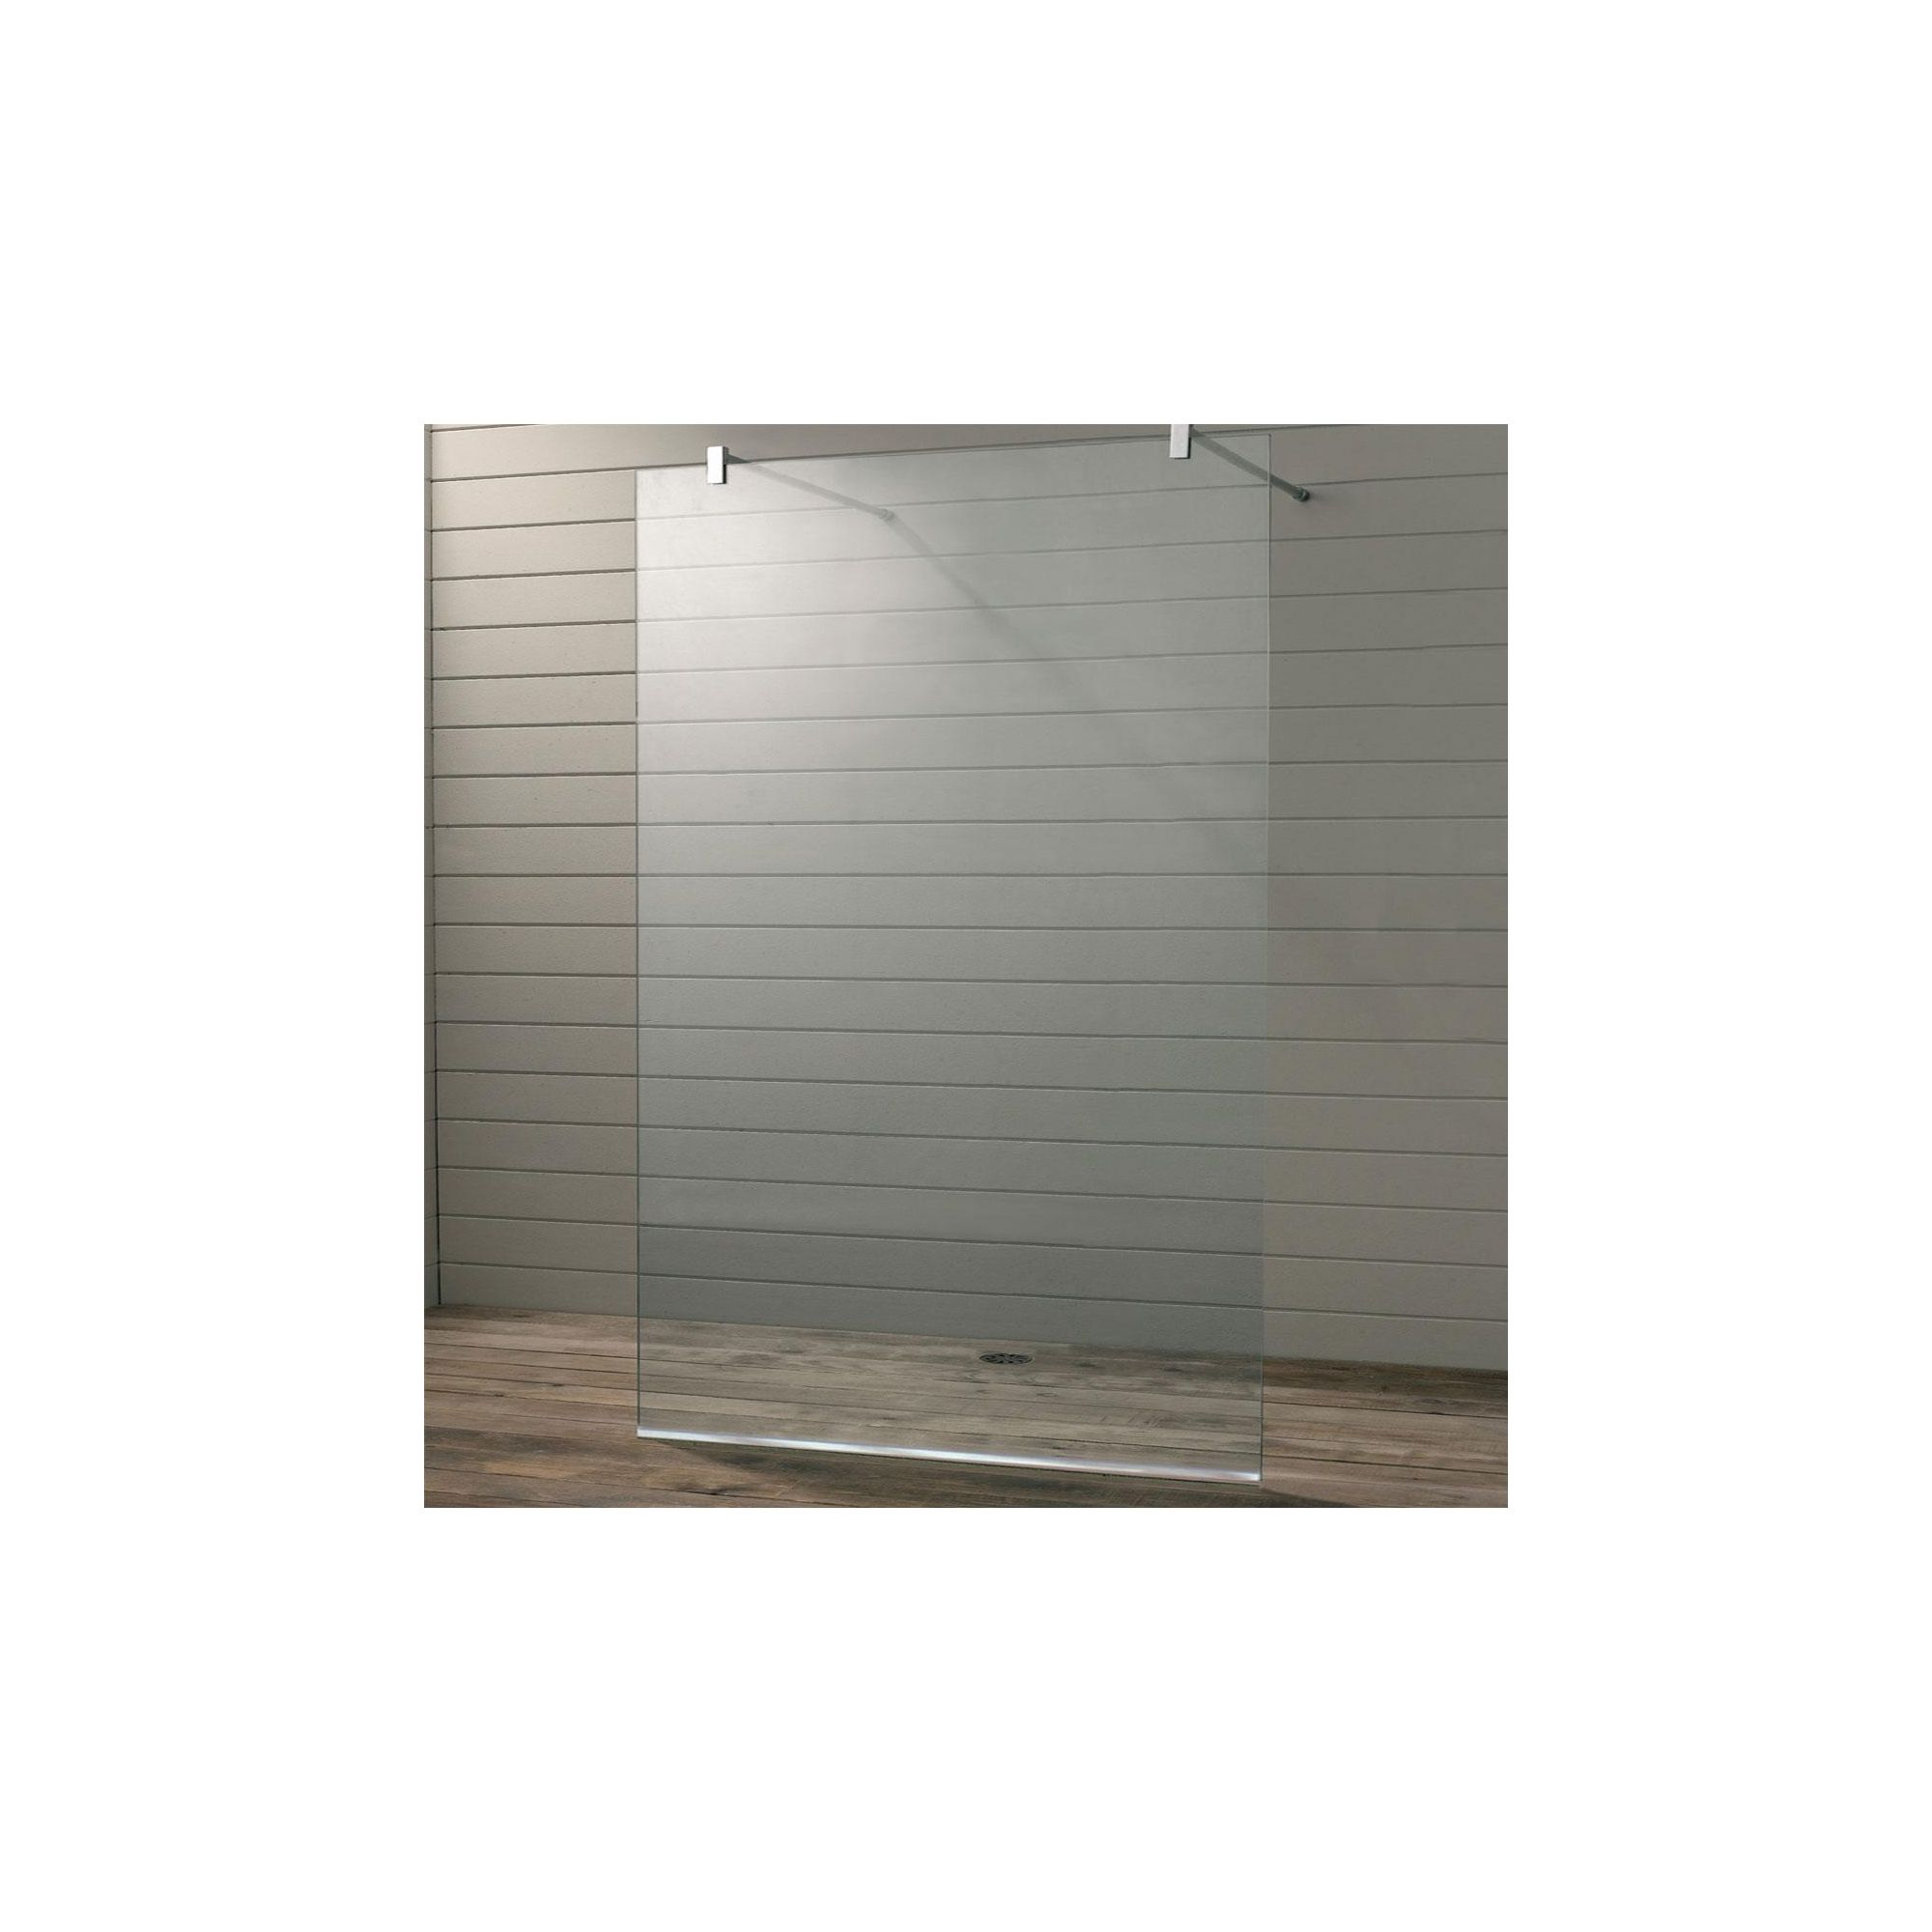 Duchy Premium Wet Room Glass Shower Panel, 900mm x 700mm, 10mm Glass, Low Profile Tray at Tesco Direct